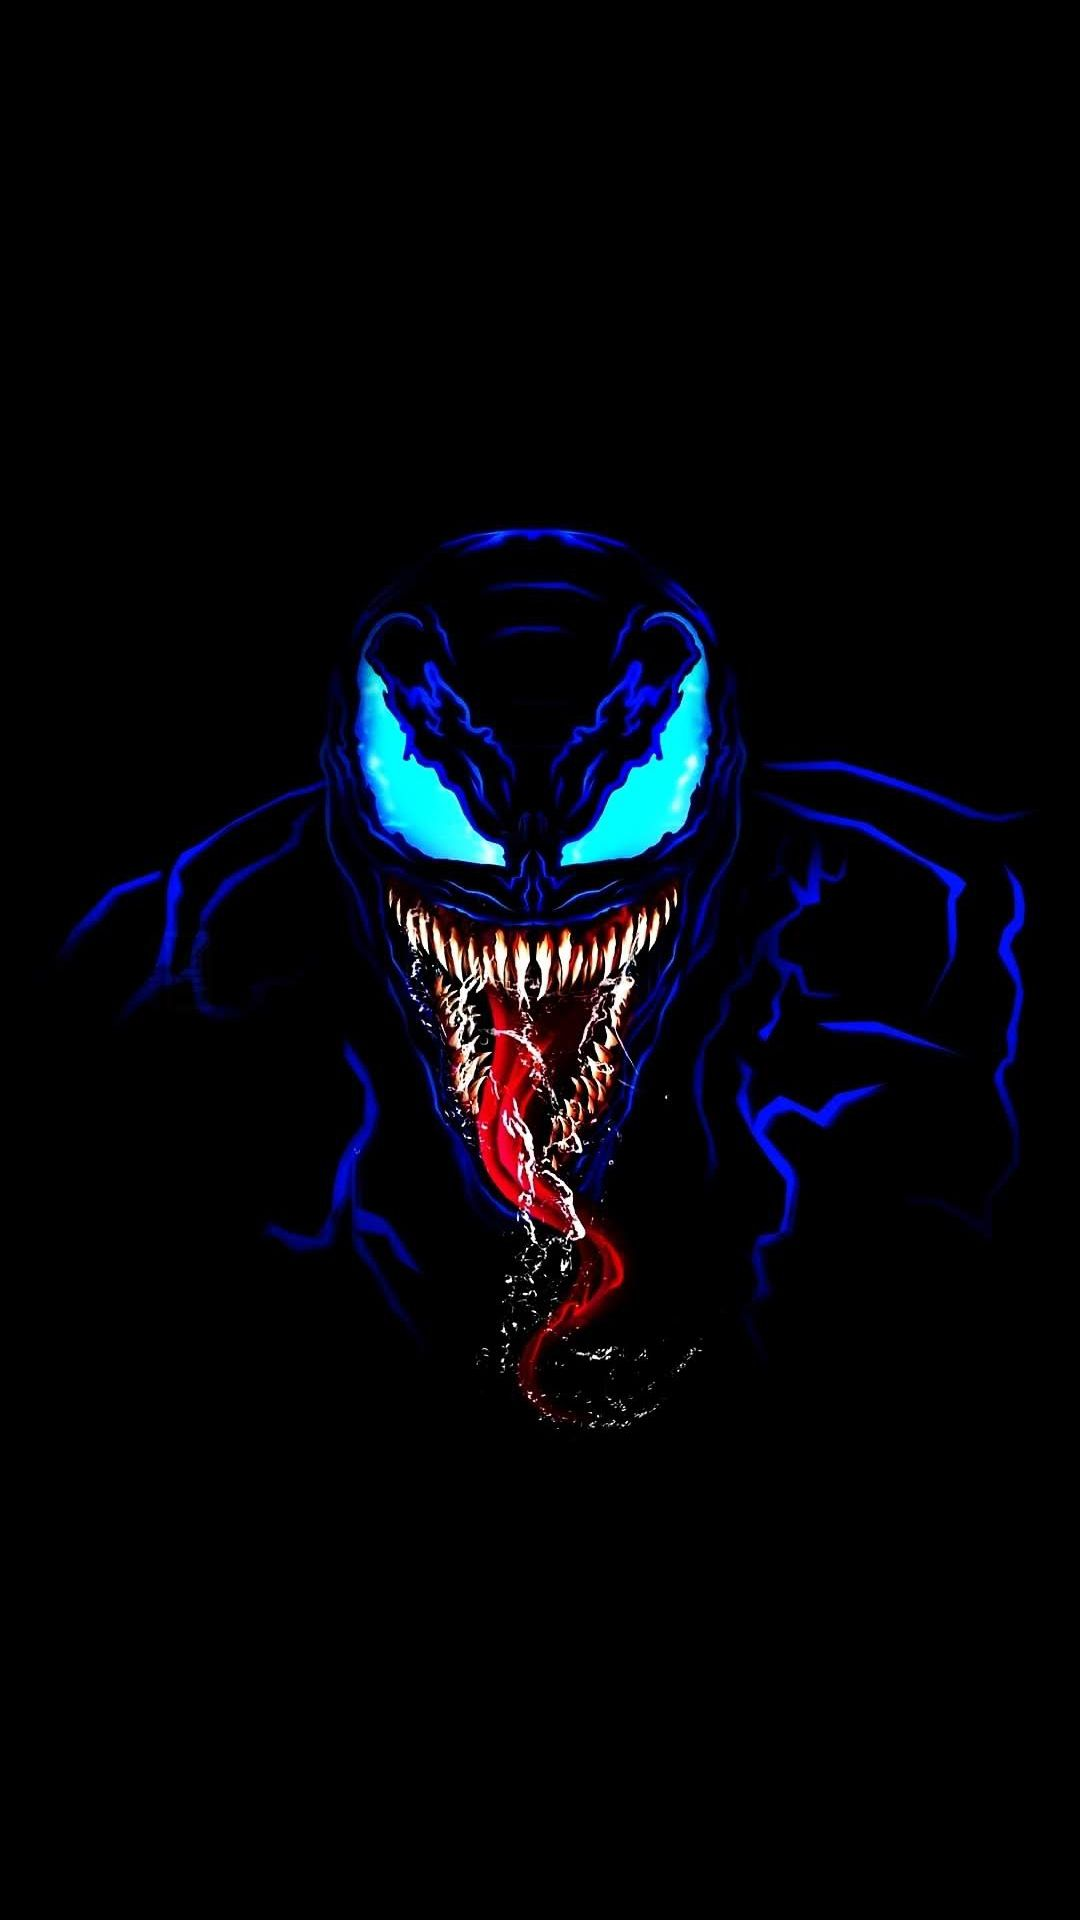 iPhone Wallpapers HD from iphoneswallpapers.com,  Venom in Dark iPhone Wallpaper